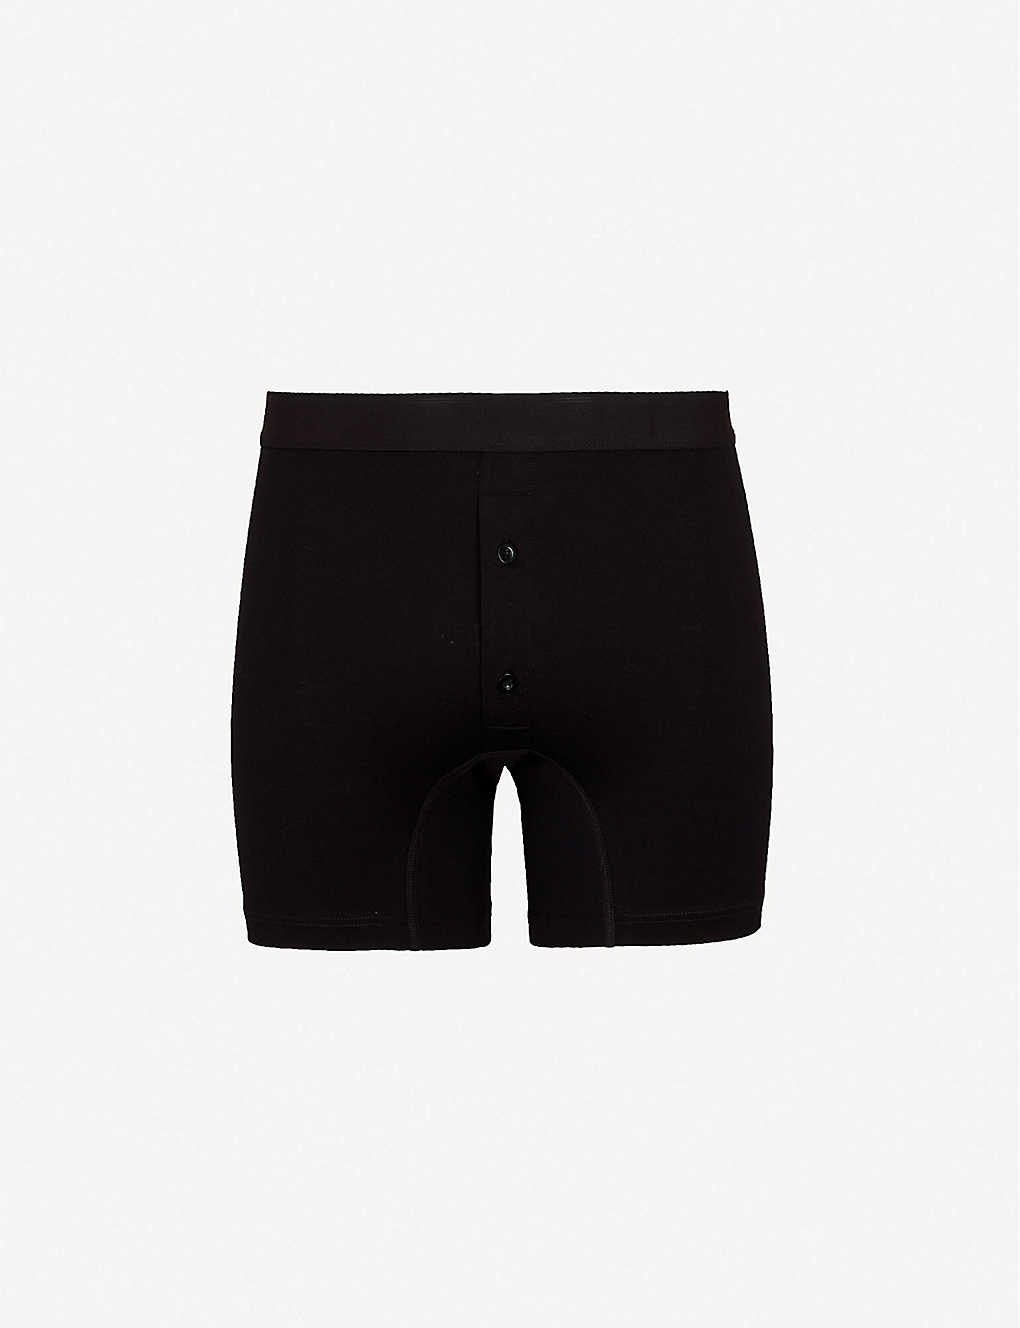 aac3bfad140a SUNSPEL - Superfine slim-fit Egyptian cotton boxer shorts ...